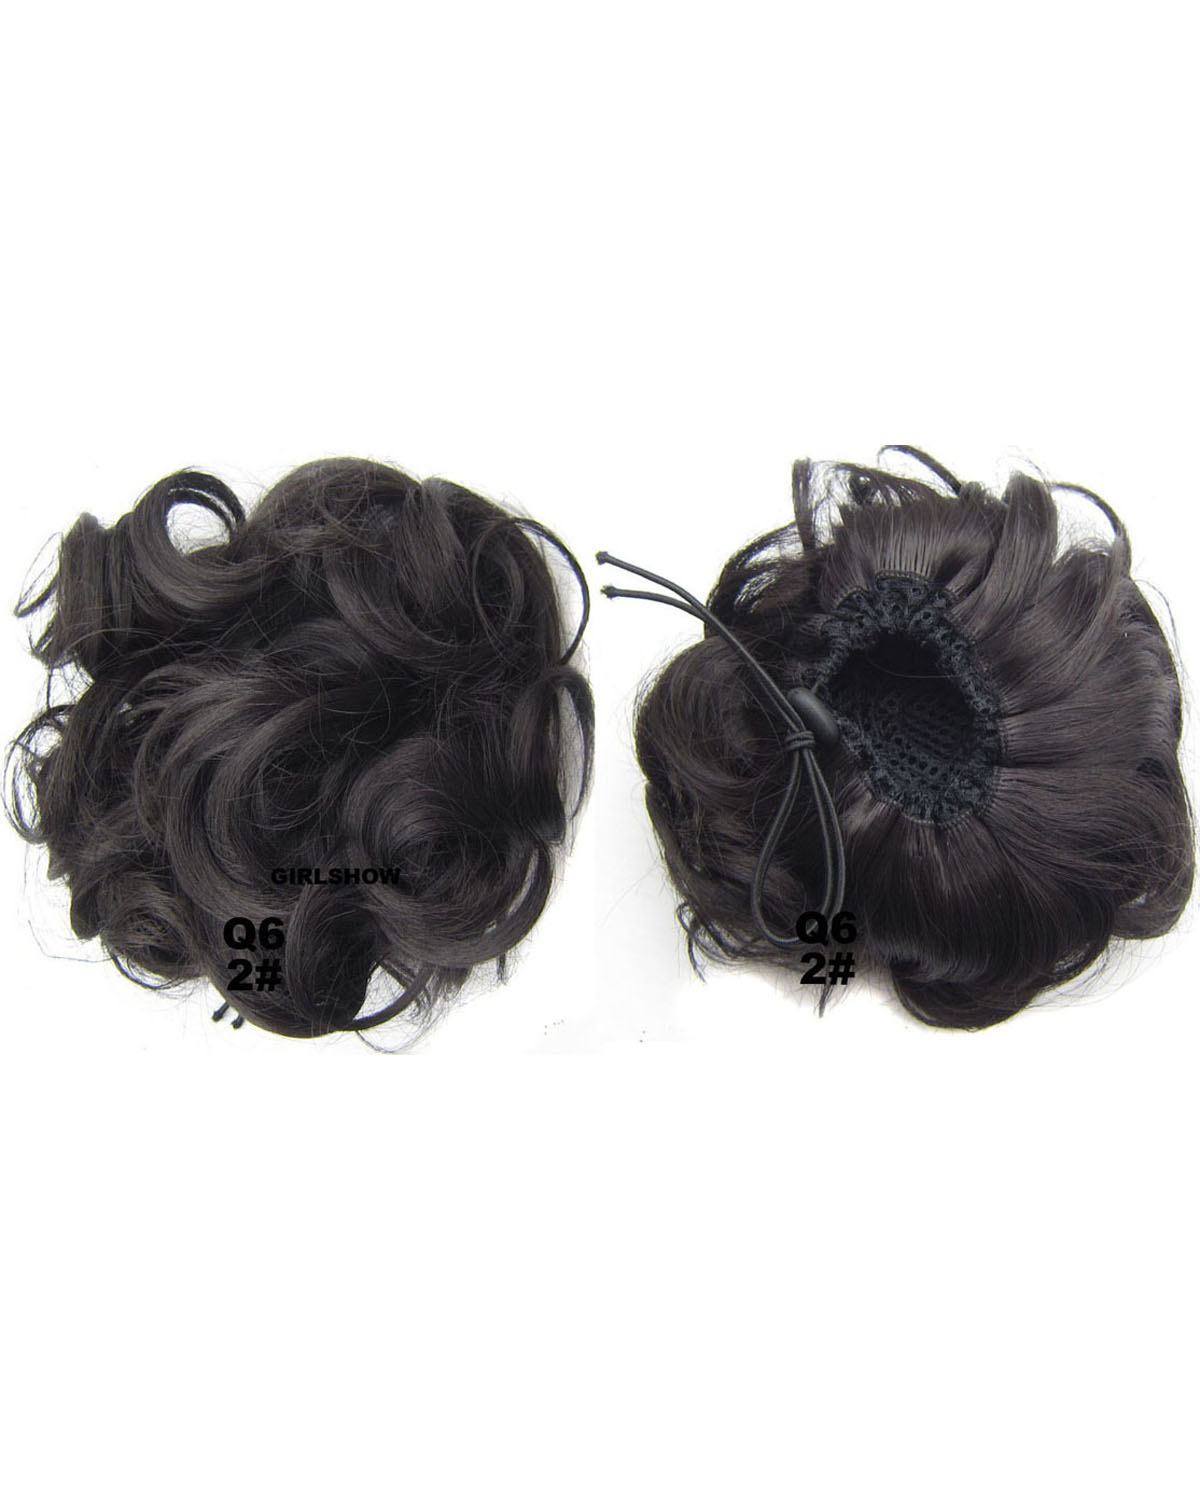 Ladies Bright and Smooth Curly and Short Hair Buns Drawstring Synthetic Hair Extension Bride Scrunchies  2#